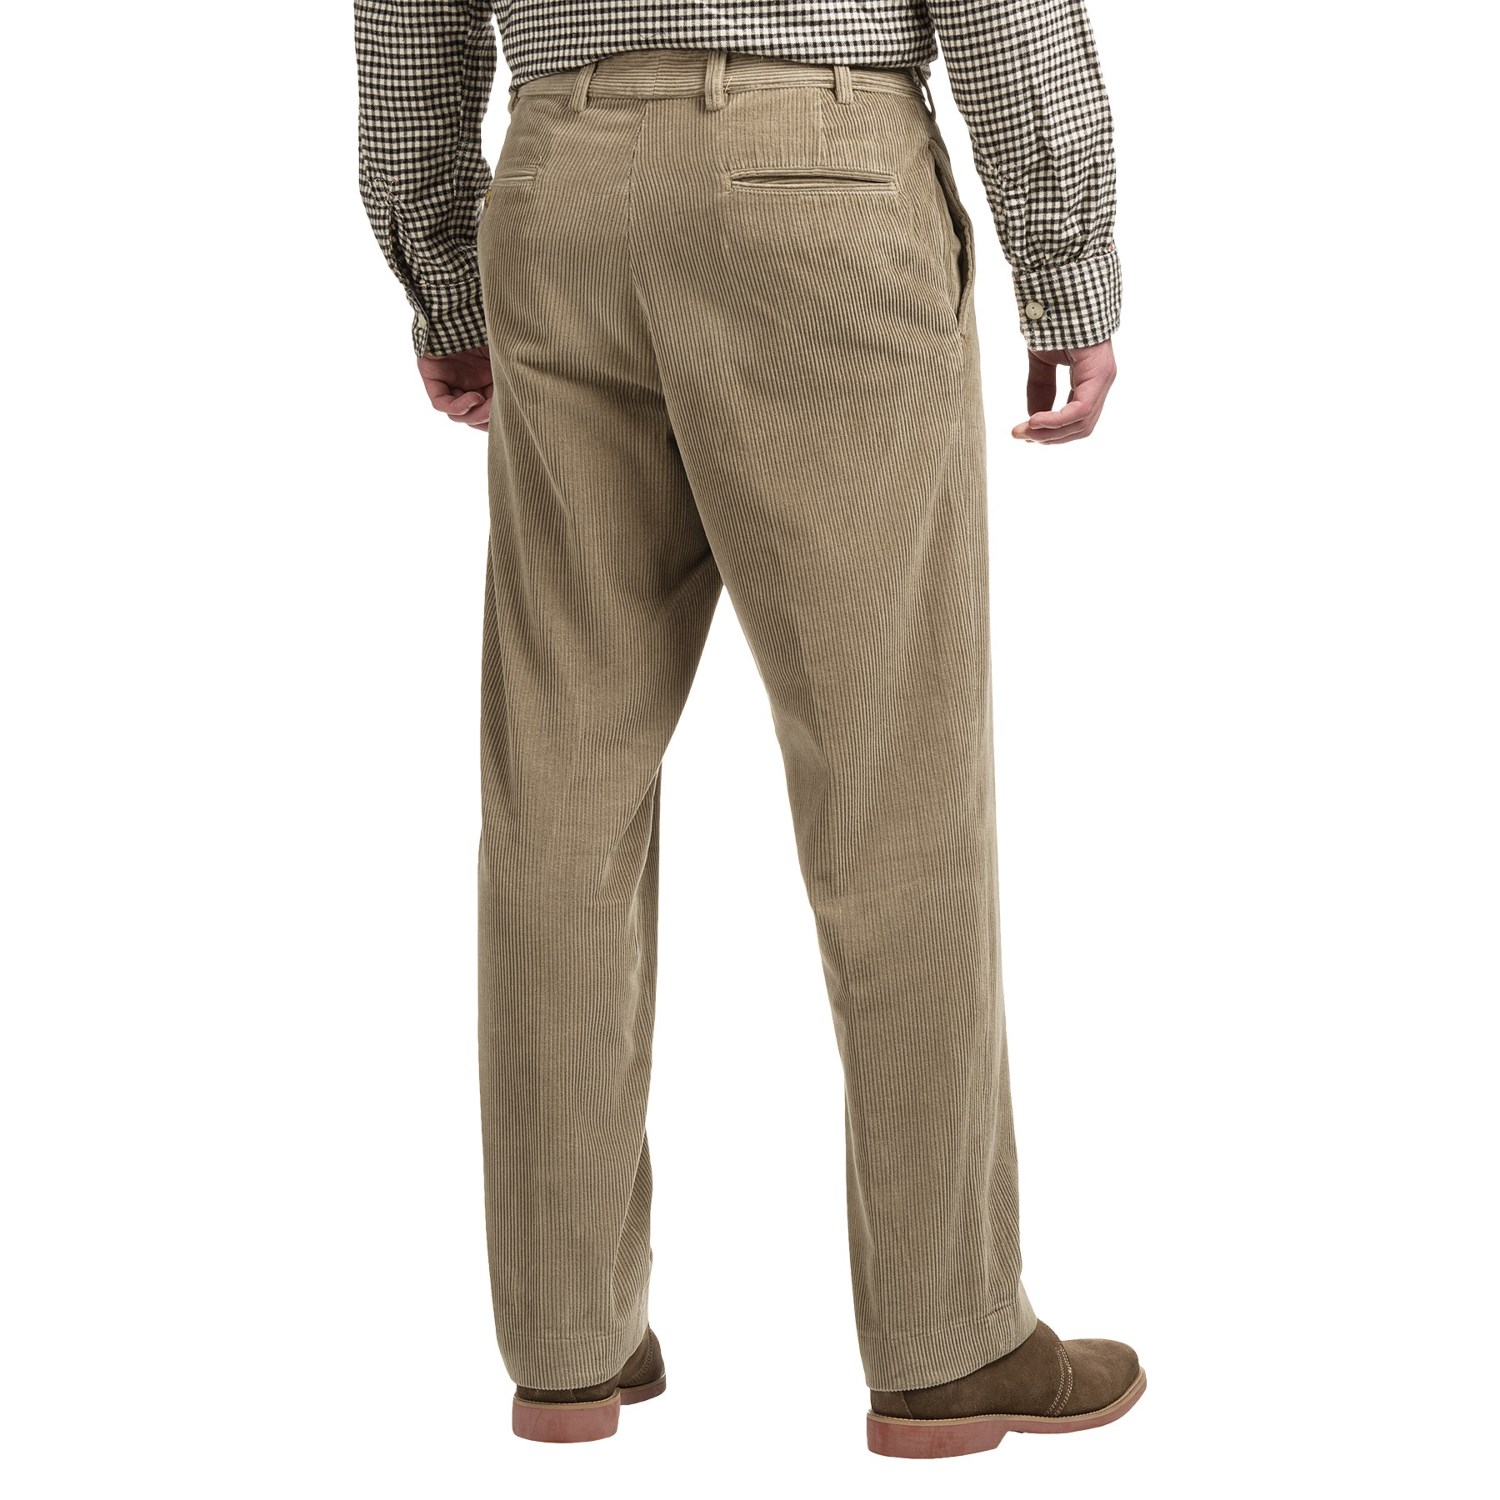 Shop men's pants and find everything from men's corduroy pants and khakis to chino pants and men's joggers. Ralph Lauren. Be the First to Know Discover new arrivals, Pants & Chinos Shorts & Swim Trunks Pajamas & Robes Underwear & Undershirts Tailored Shop.